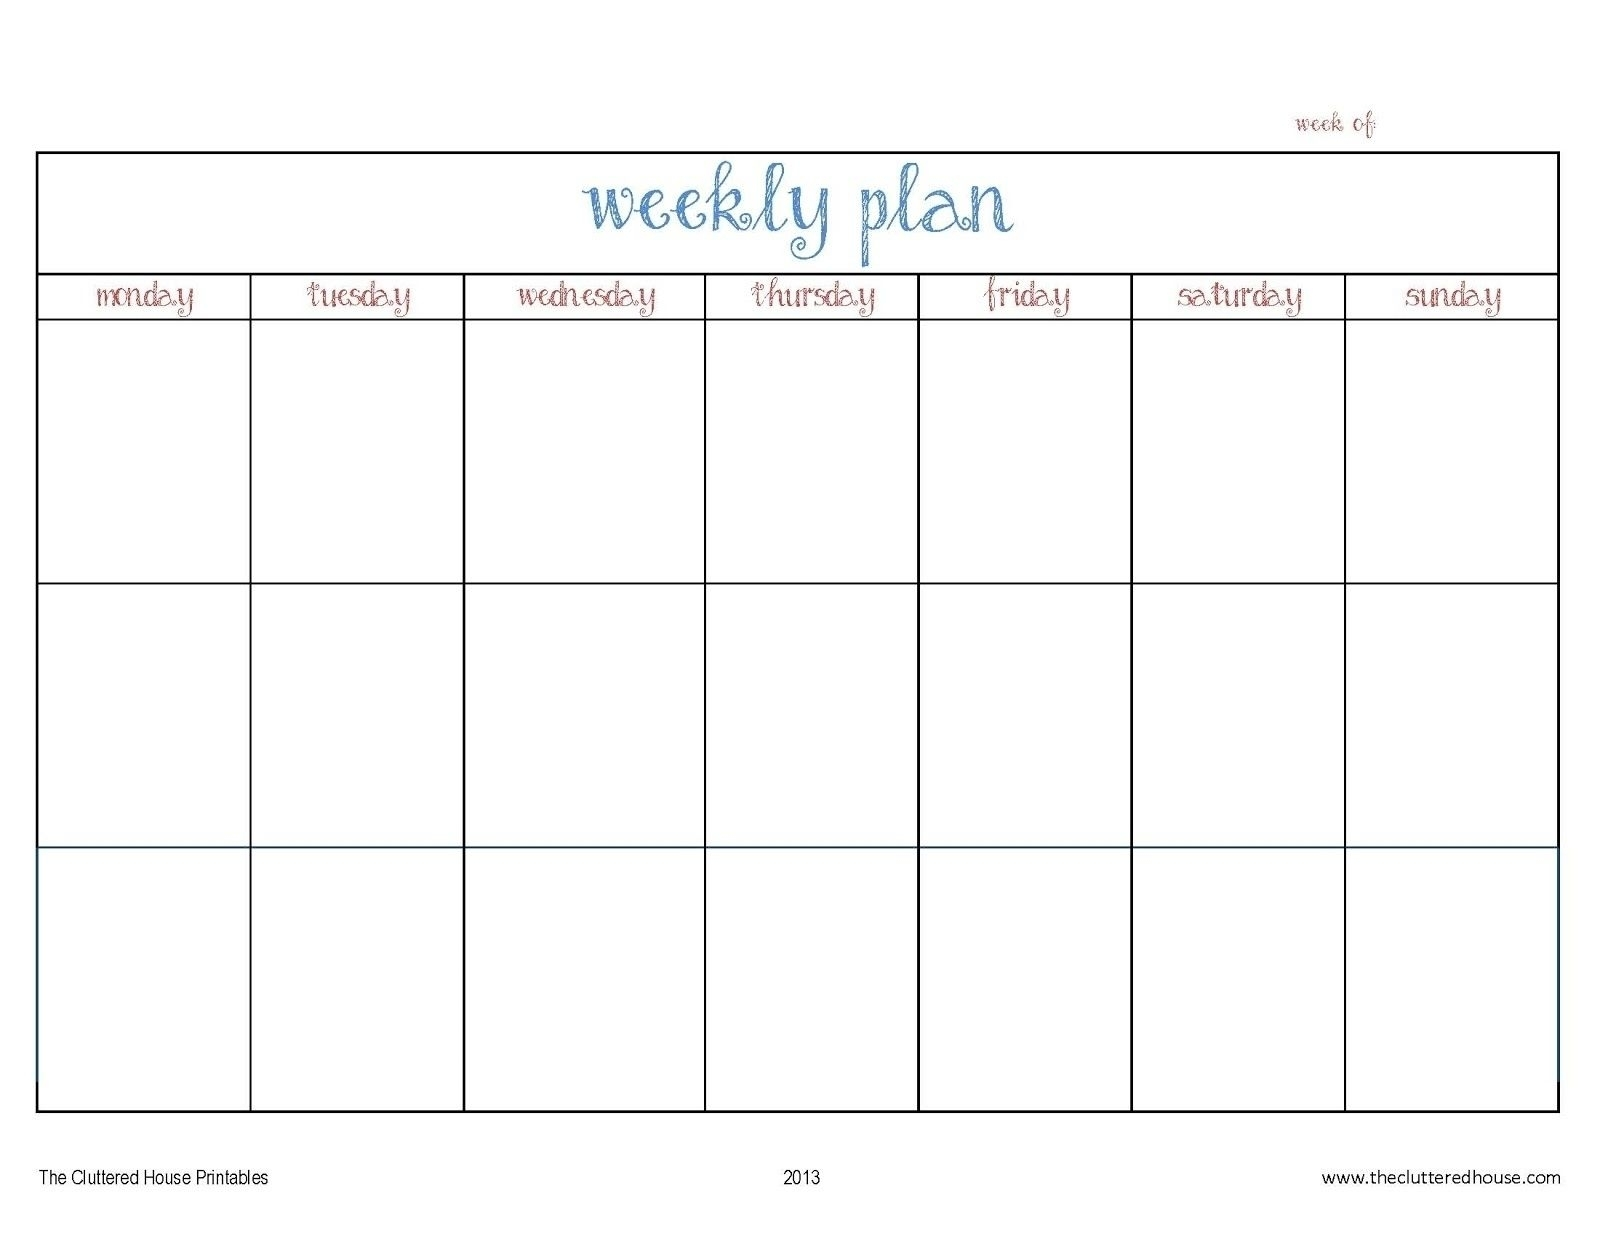 Day Lank Calendar Free Week Template Printable Schedule | Smorad pertaining to 7 Day Week Free Schedule Template